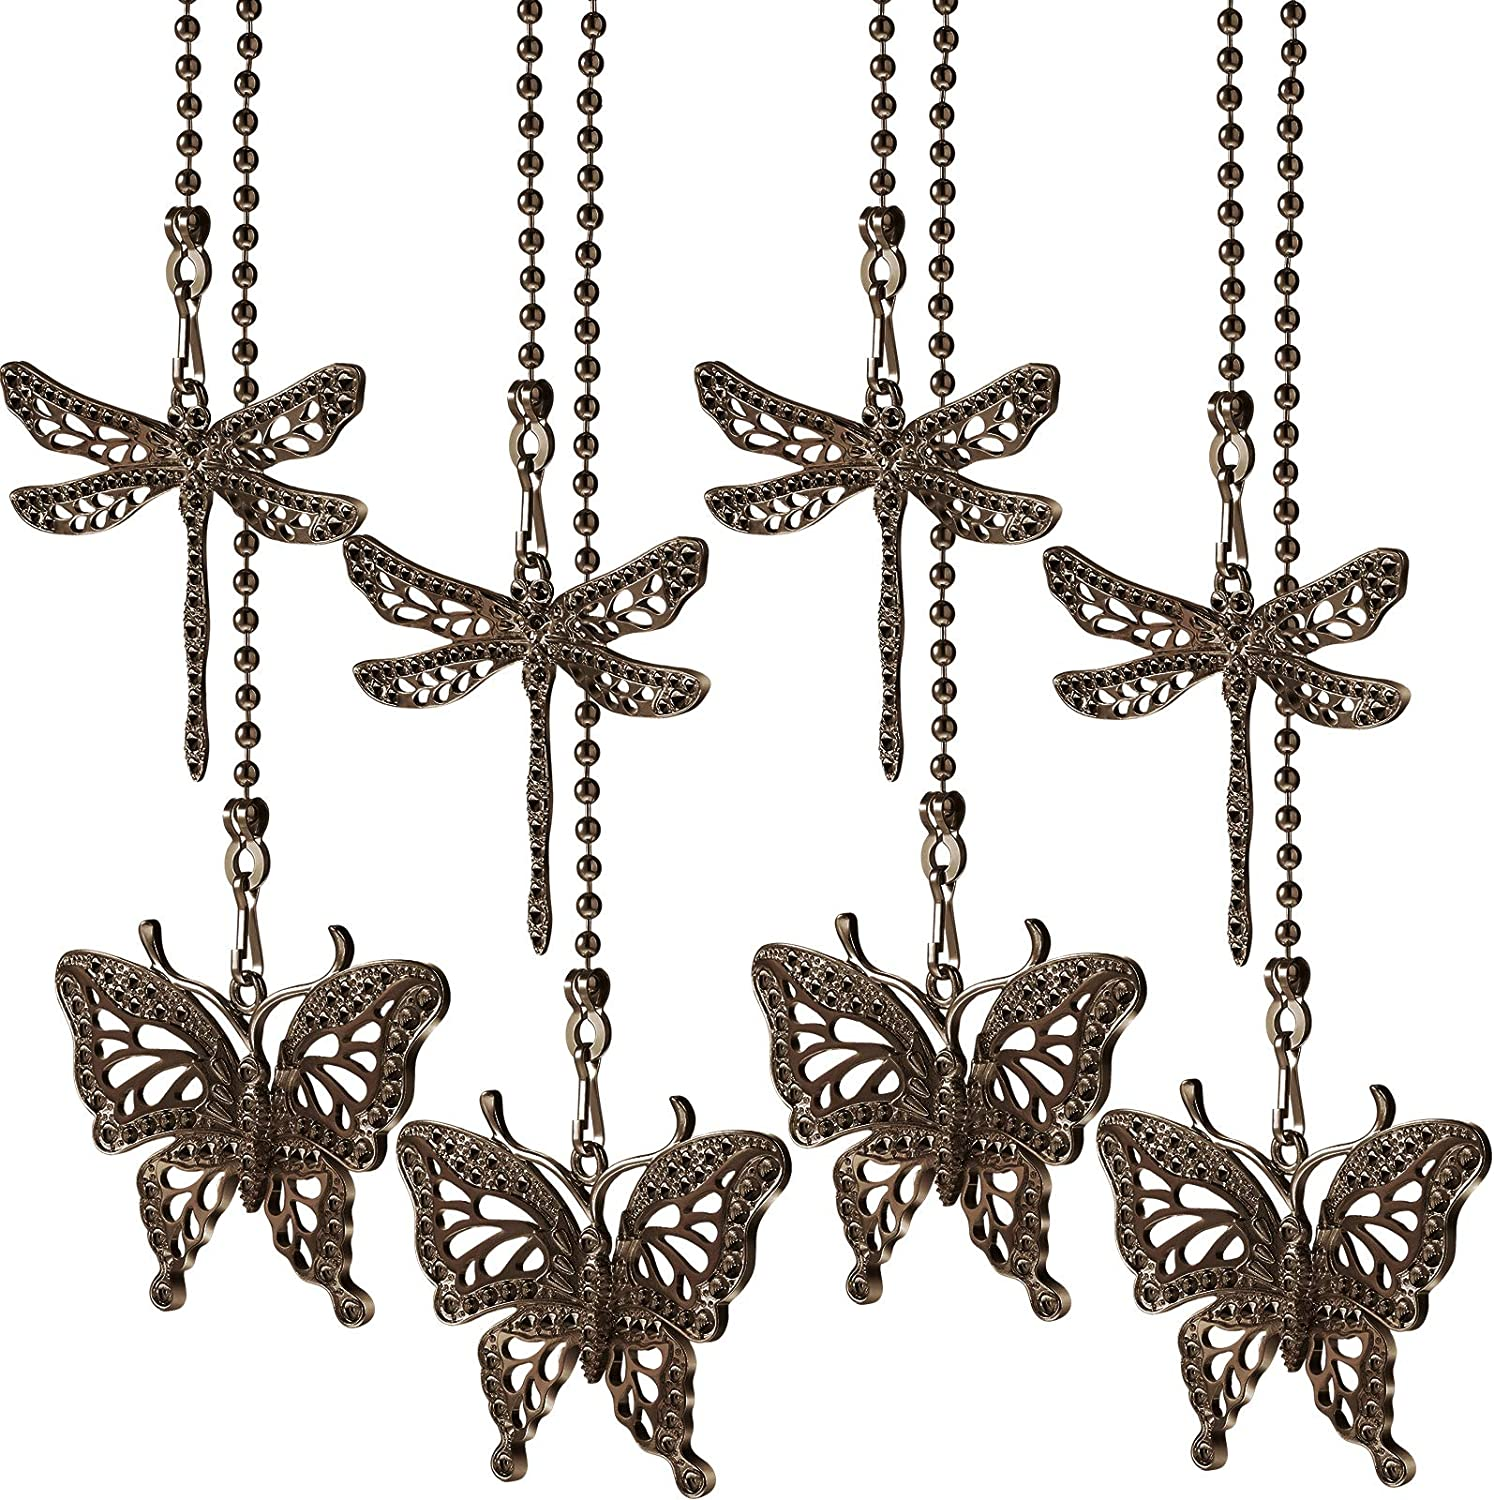 8 Pieces List price Butterfly and Dragonfly Ceiling Pendants Fan Chain Pull National uniform free shipping